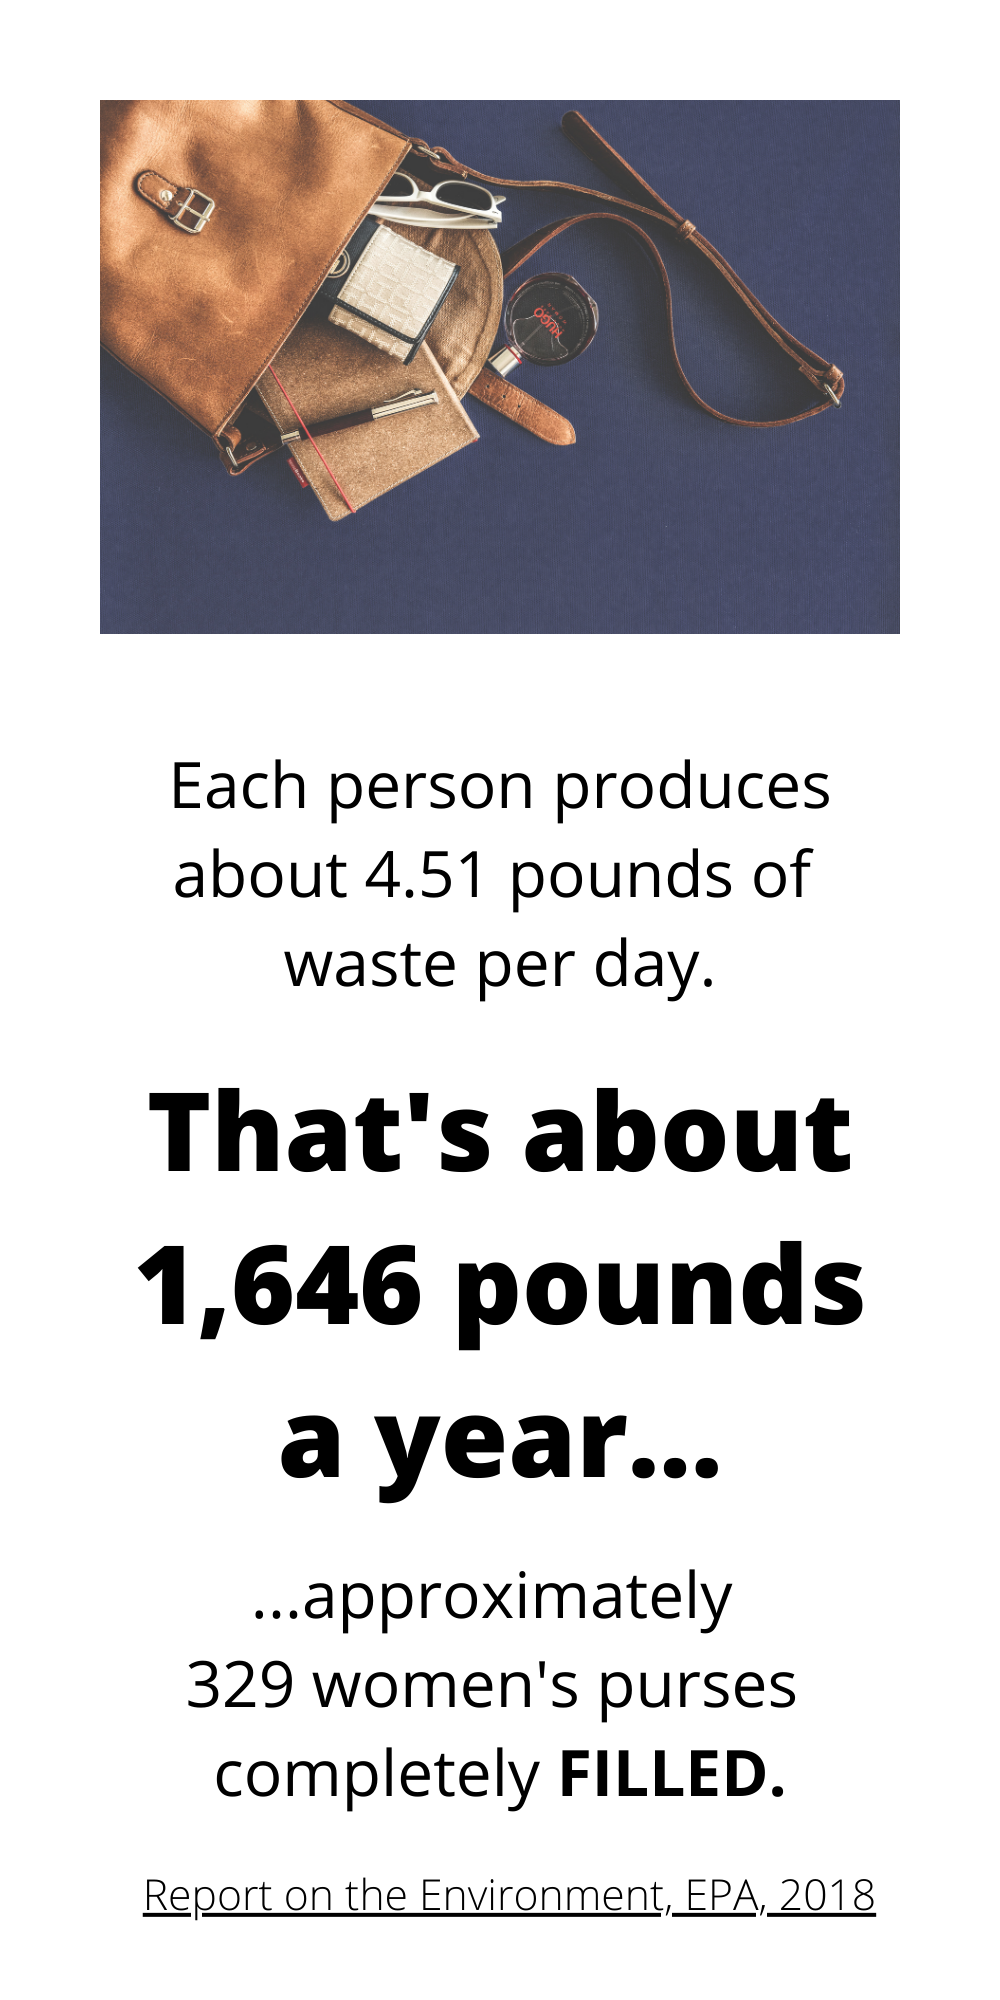 Each person produce about 4.51 pounds of waste per day.